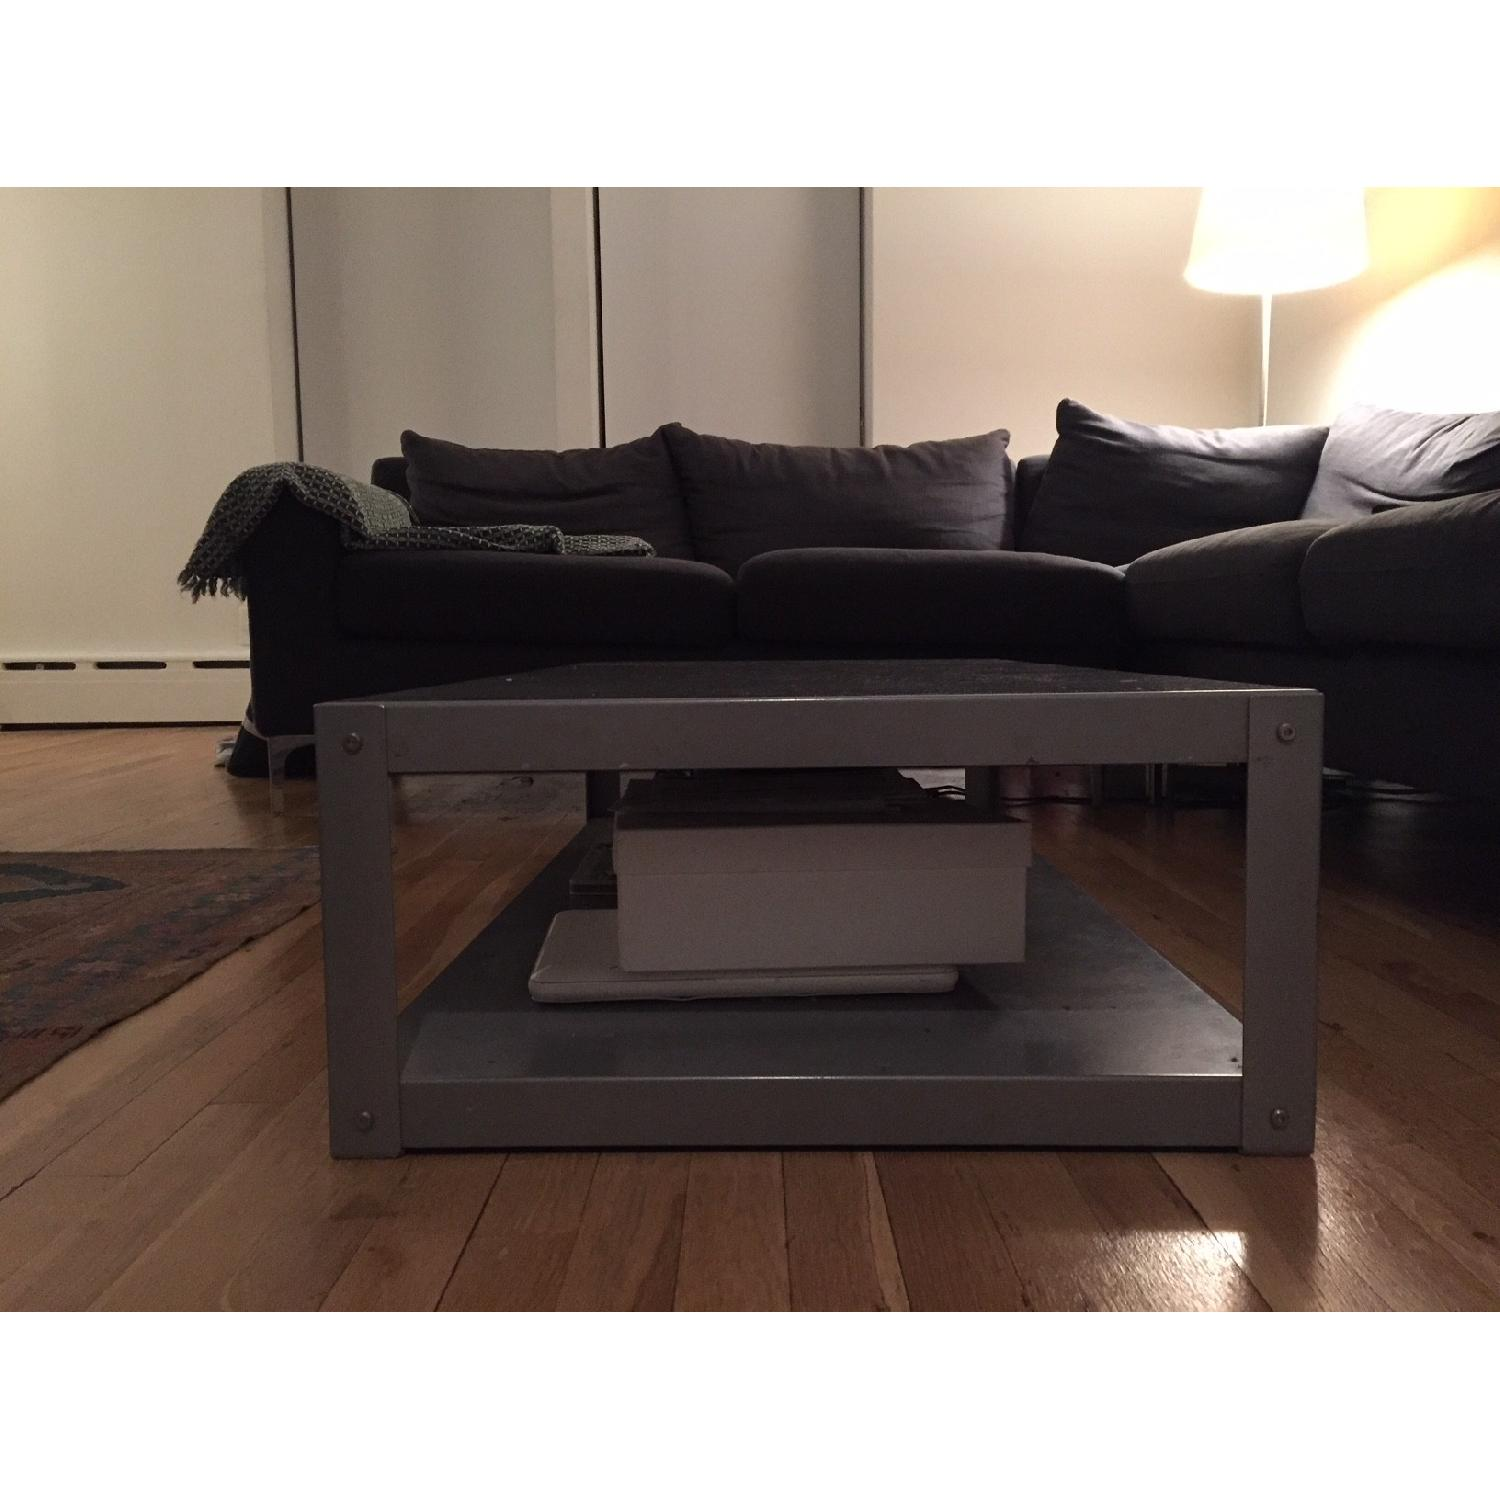 CB2 Go Cart Carbon Rolling Coffee Table TV Stand AptDeco